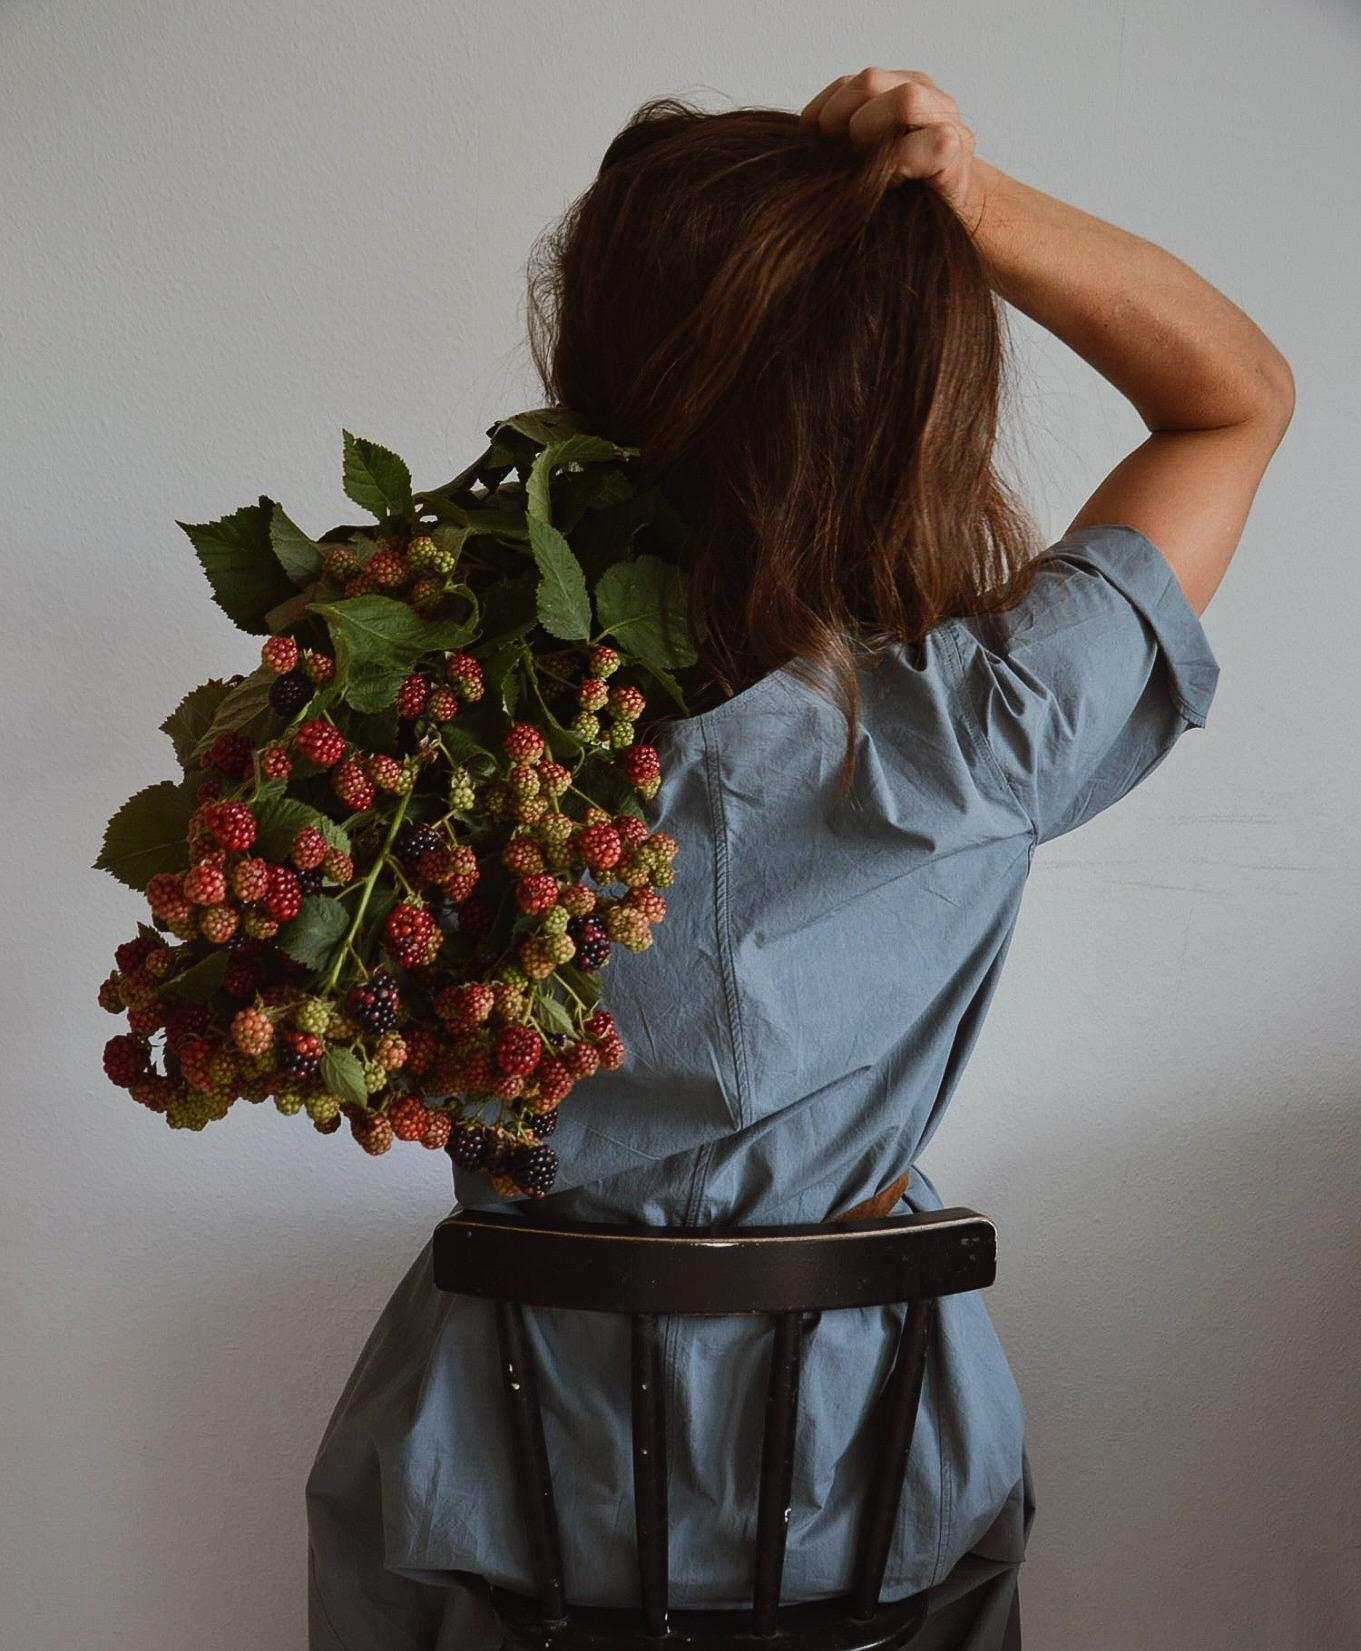 Brombeerliebe #fashioncrush #freshflowerfriday